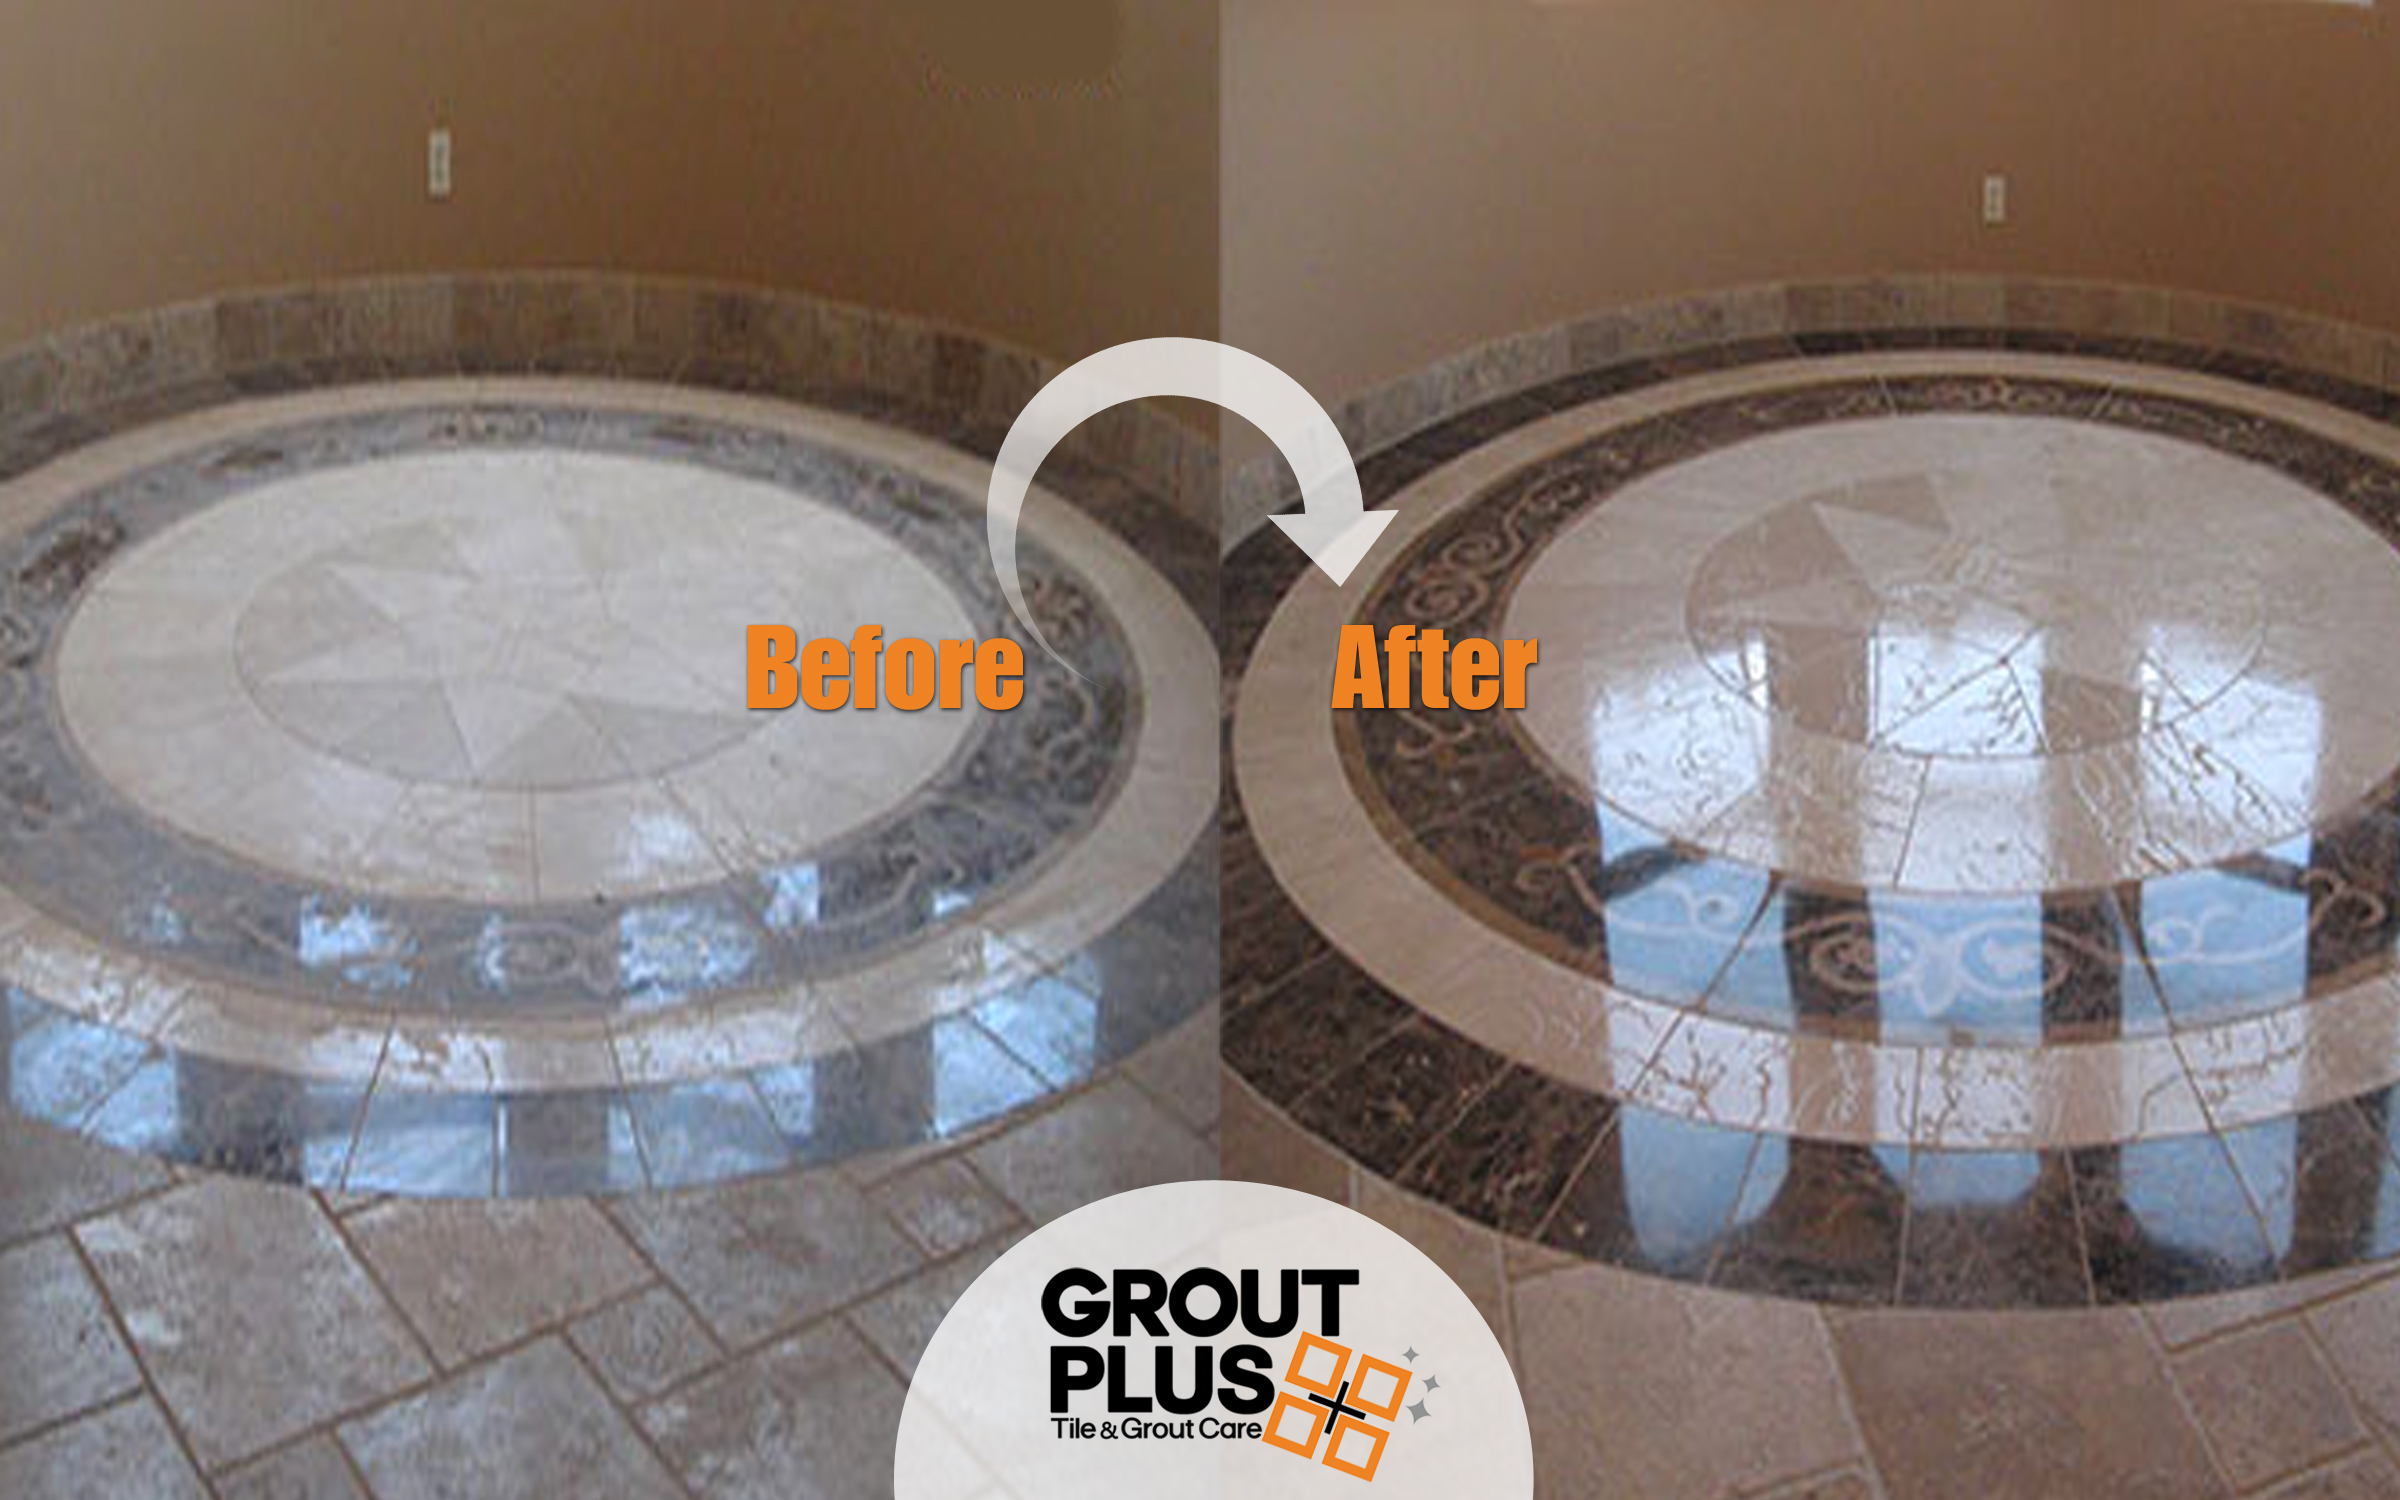 Grout Plus Before After Tile Grout20.jpg